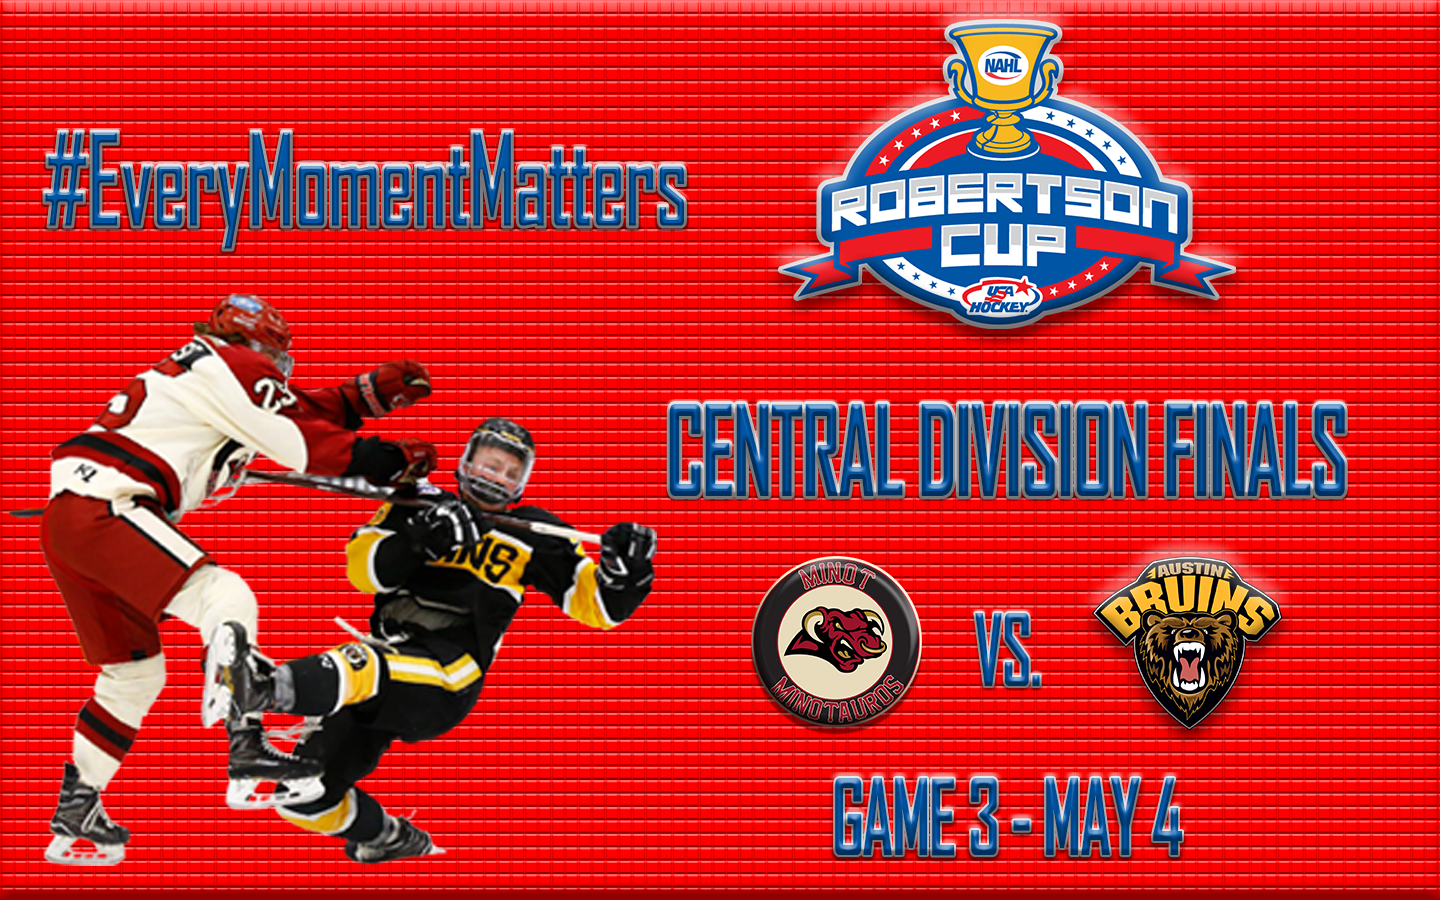 Central Division Finals Game 3